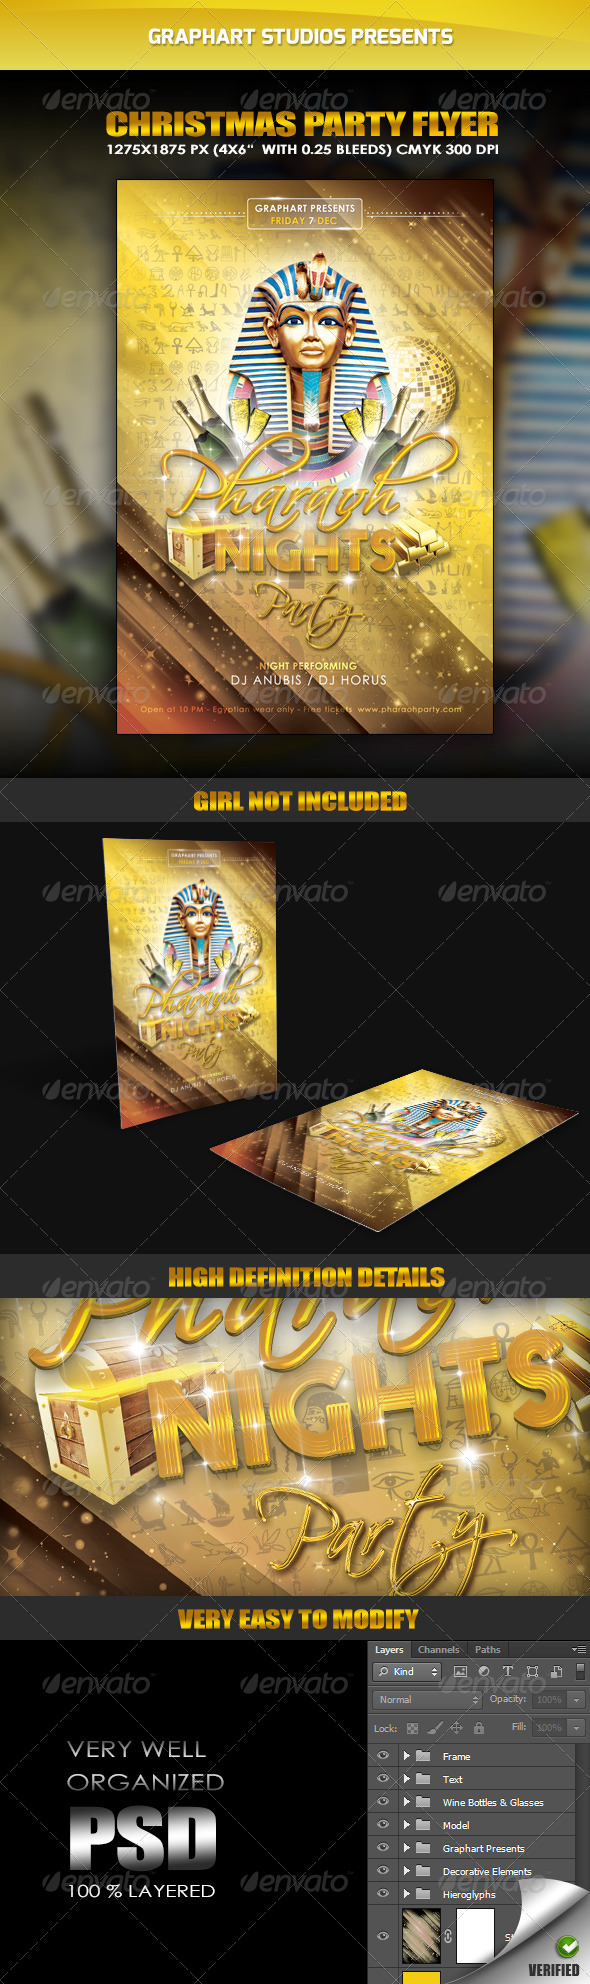 GraphicRiver Pharaoh Nights Party Flyer 6172545